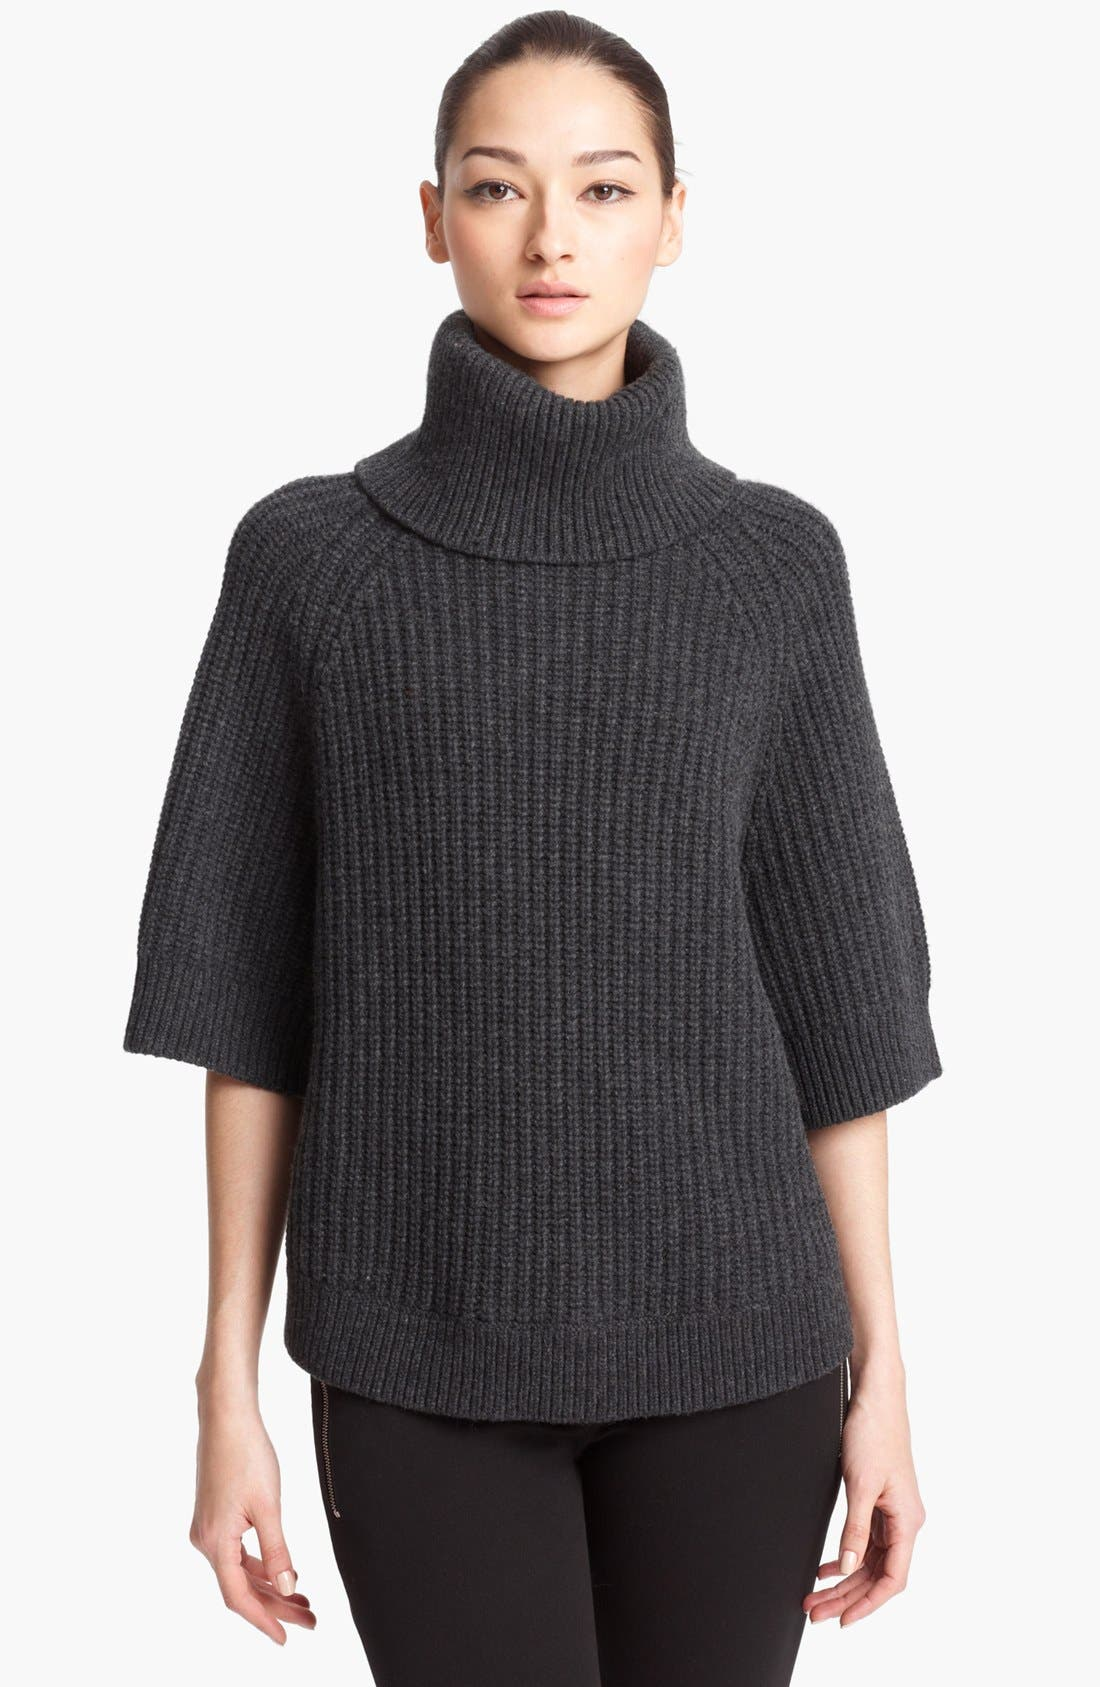 MICHAEL KORS Turtleneck Sweater, Main, color, 020